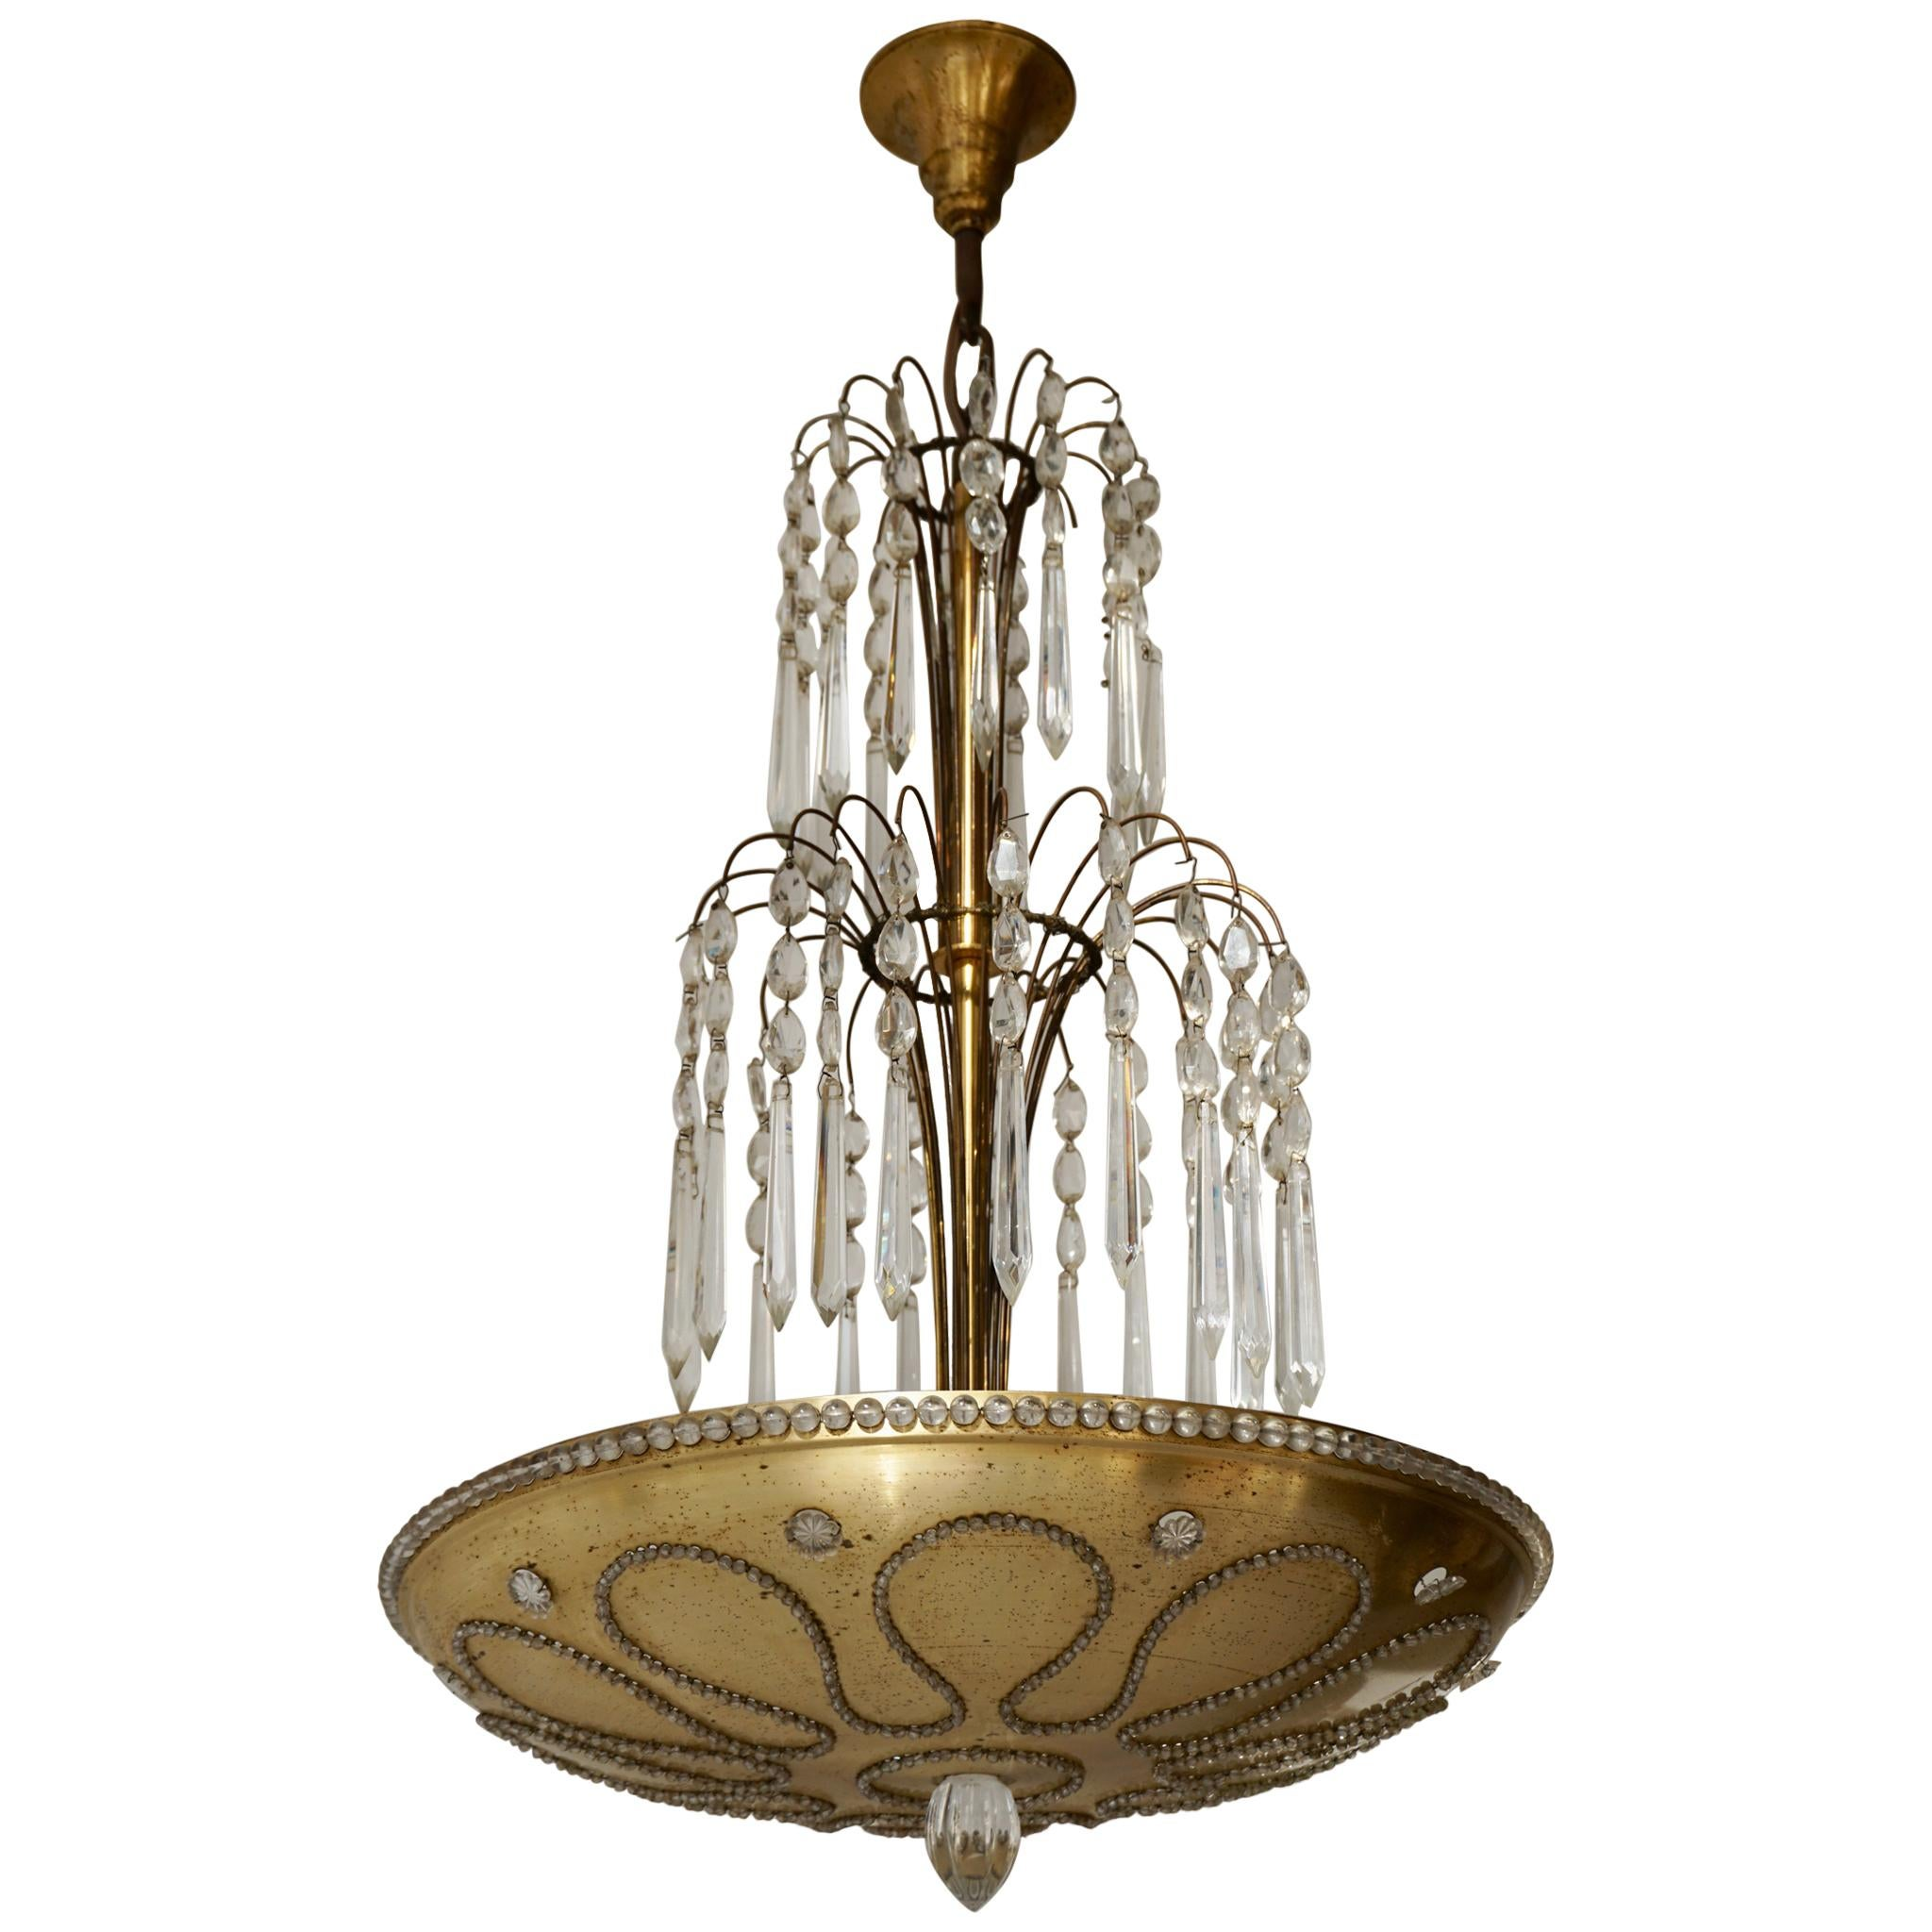 Chandelier in Gilded Metal and Crystal